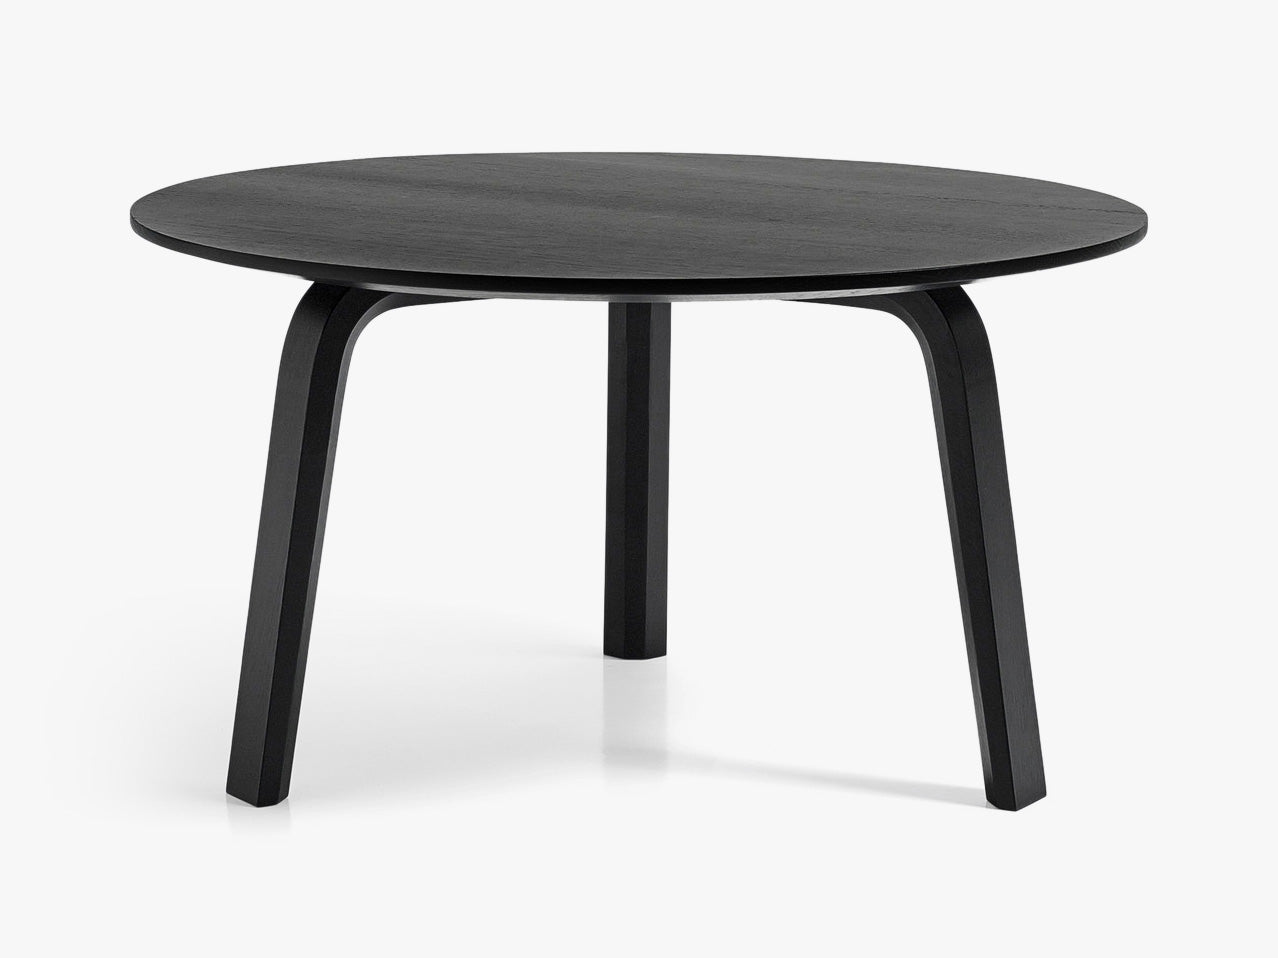 Bella Coffee Table - Ø60 x H32, Sort fra HAY